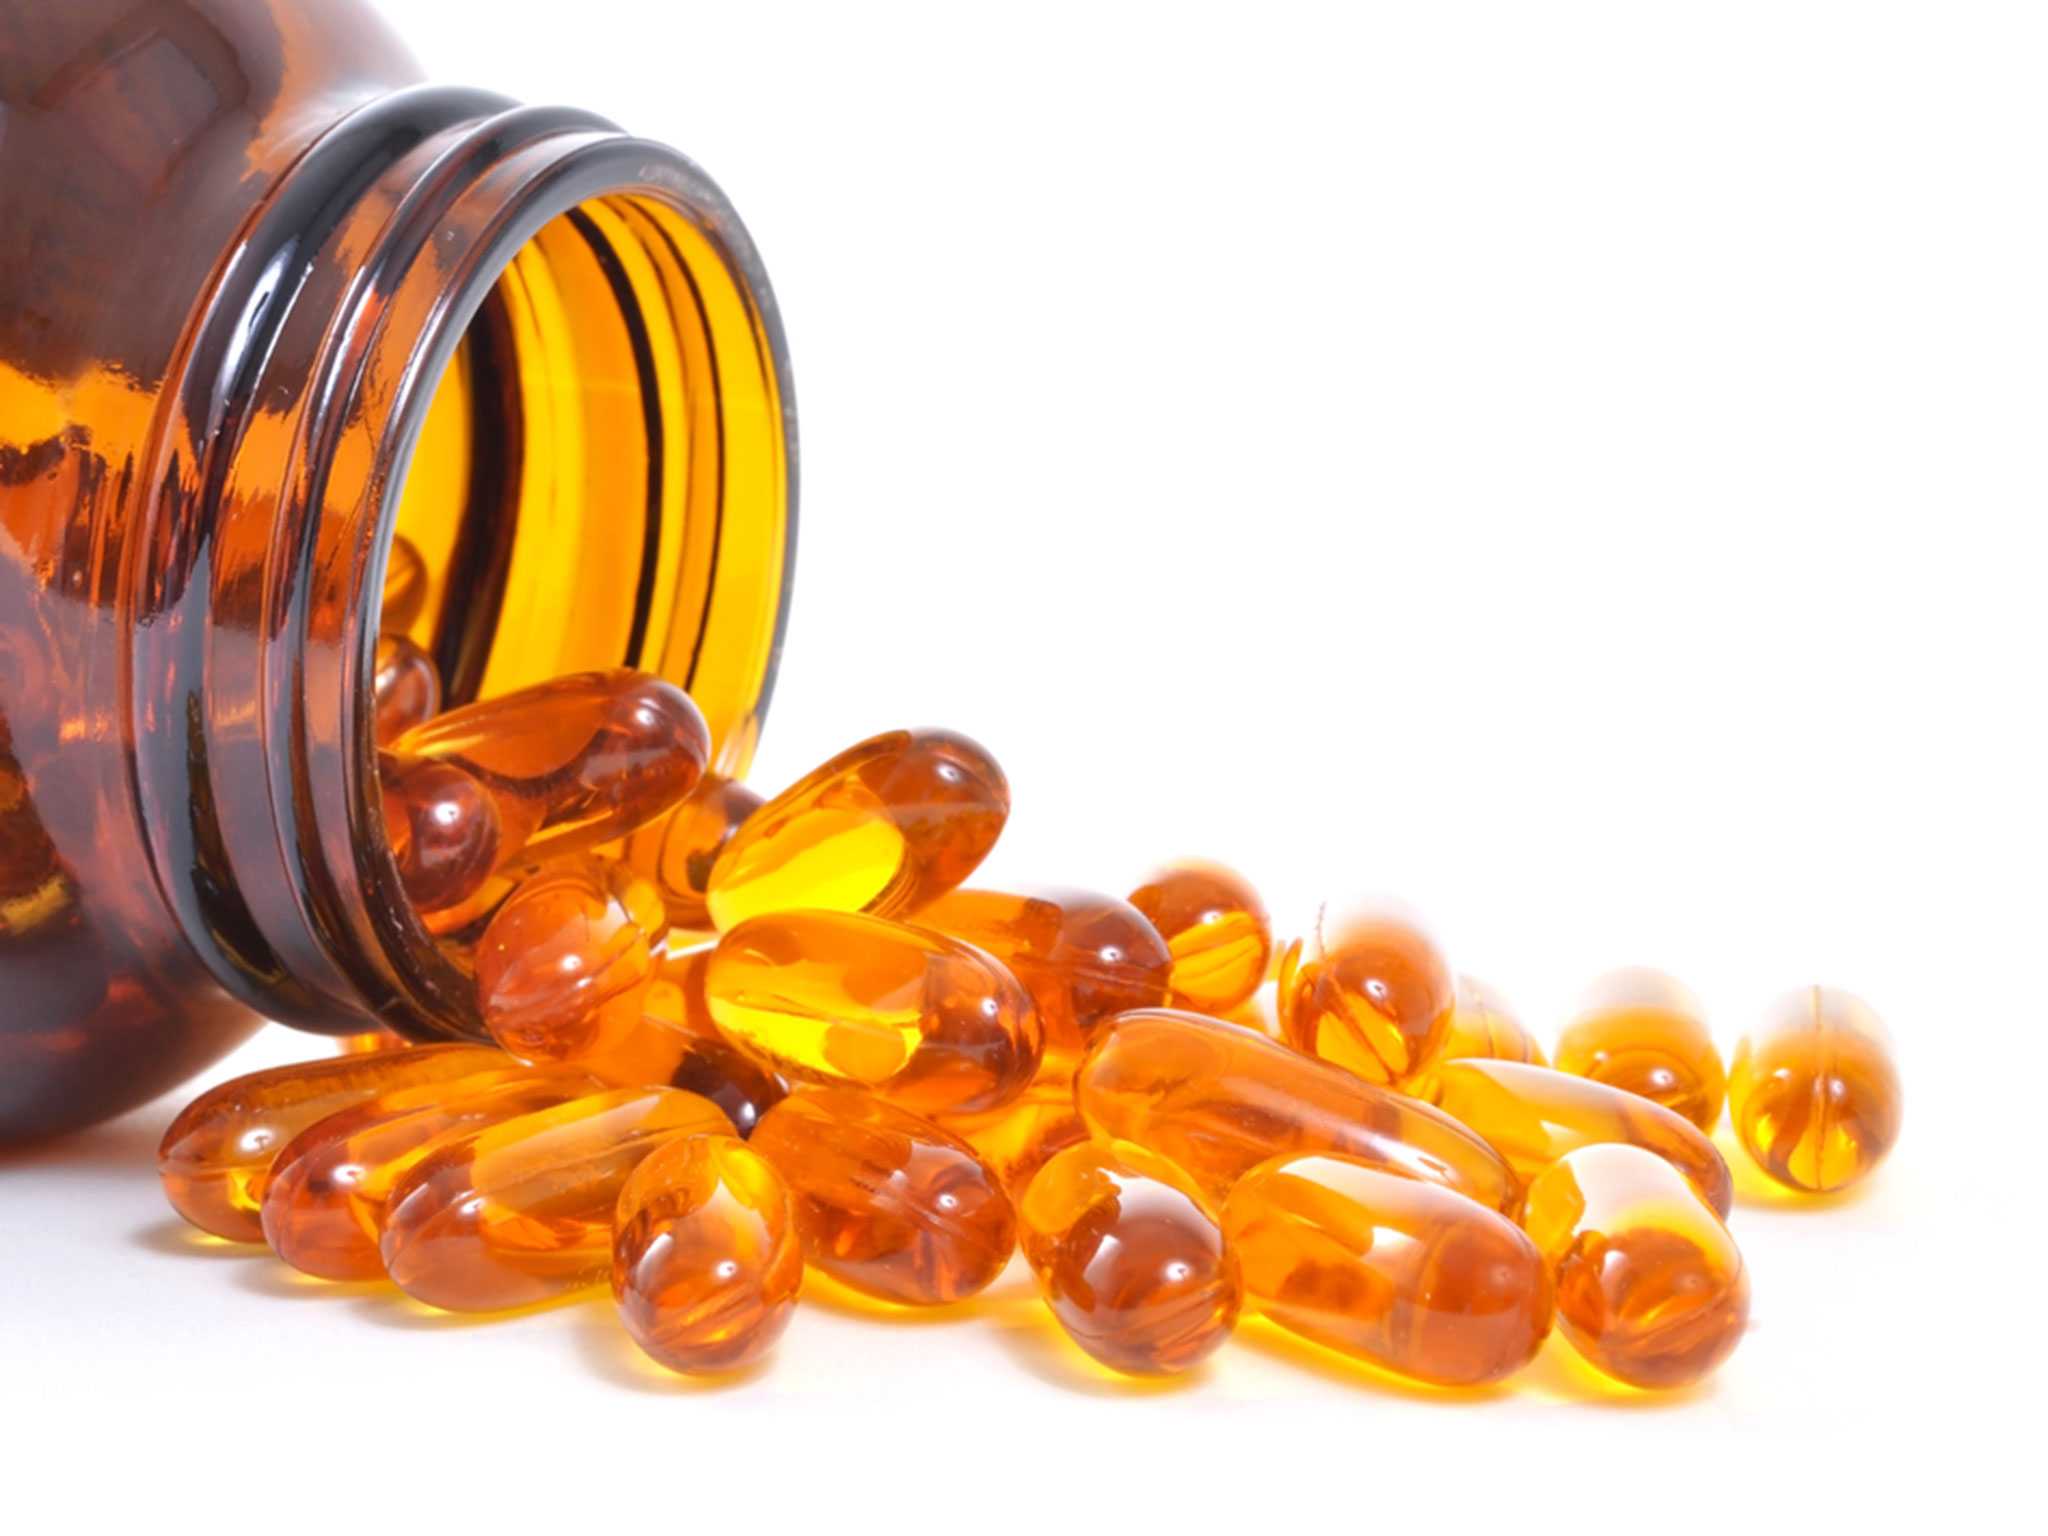 High doses of vitamin D could benefit patients with advanced colorectal cancer